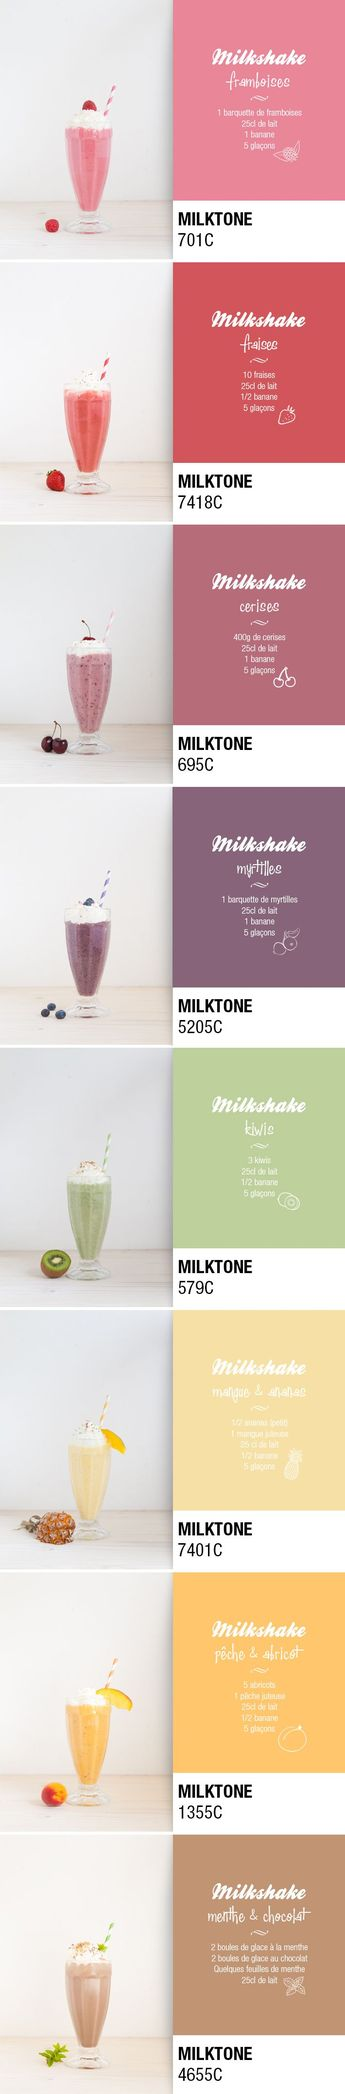 One milkshake a day… Ma palette de vitamines.